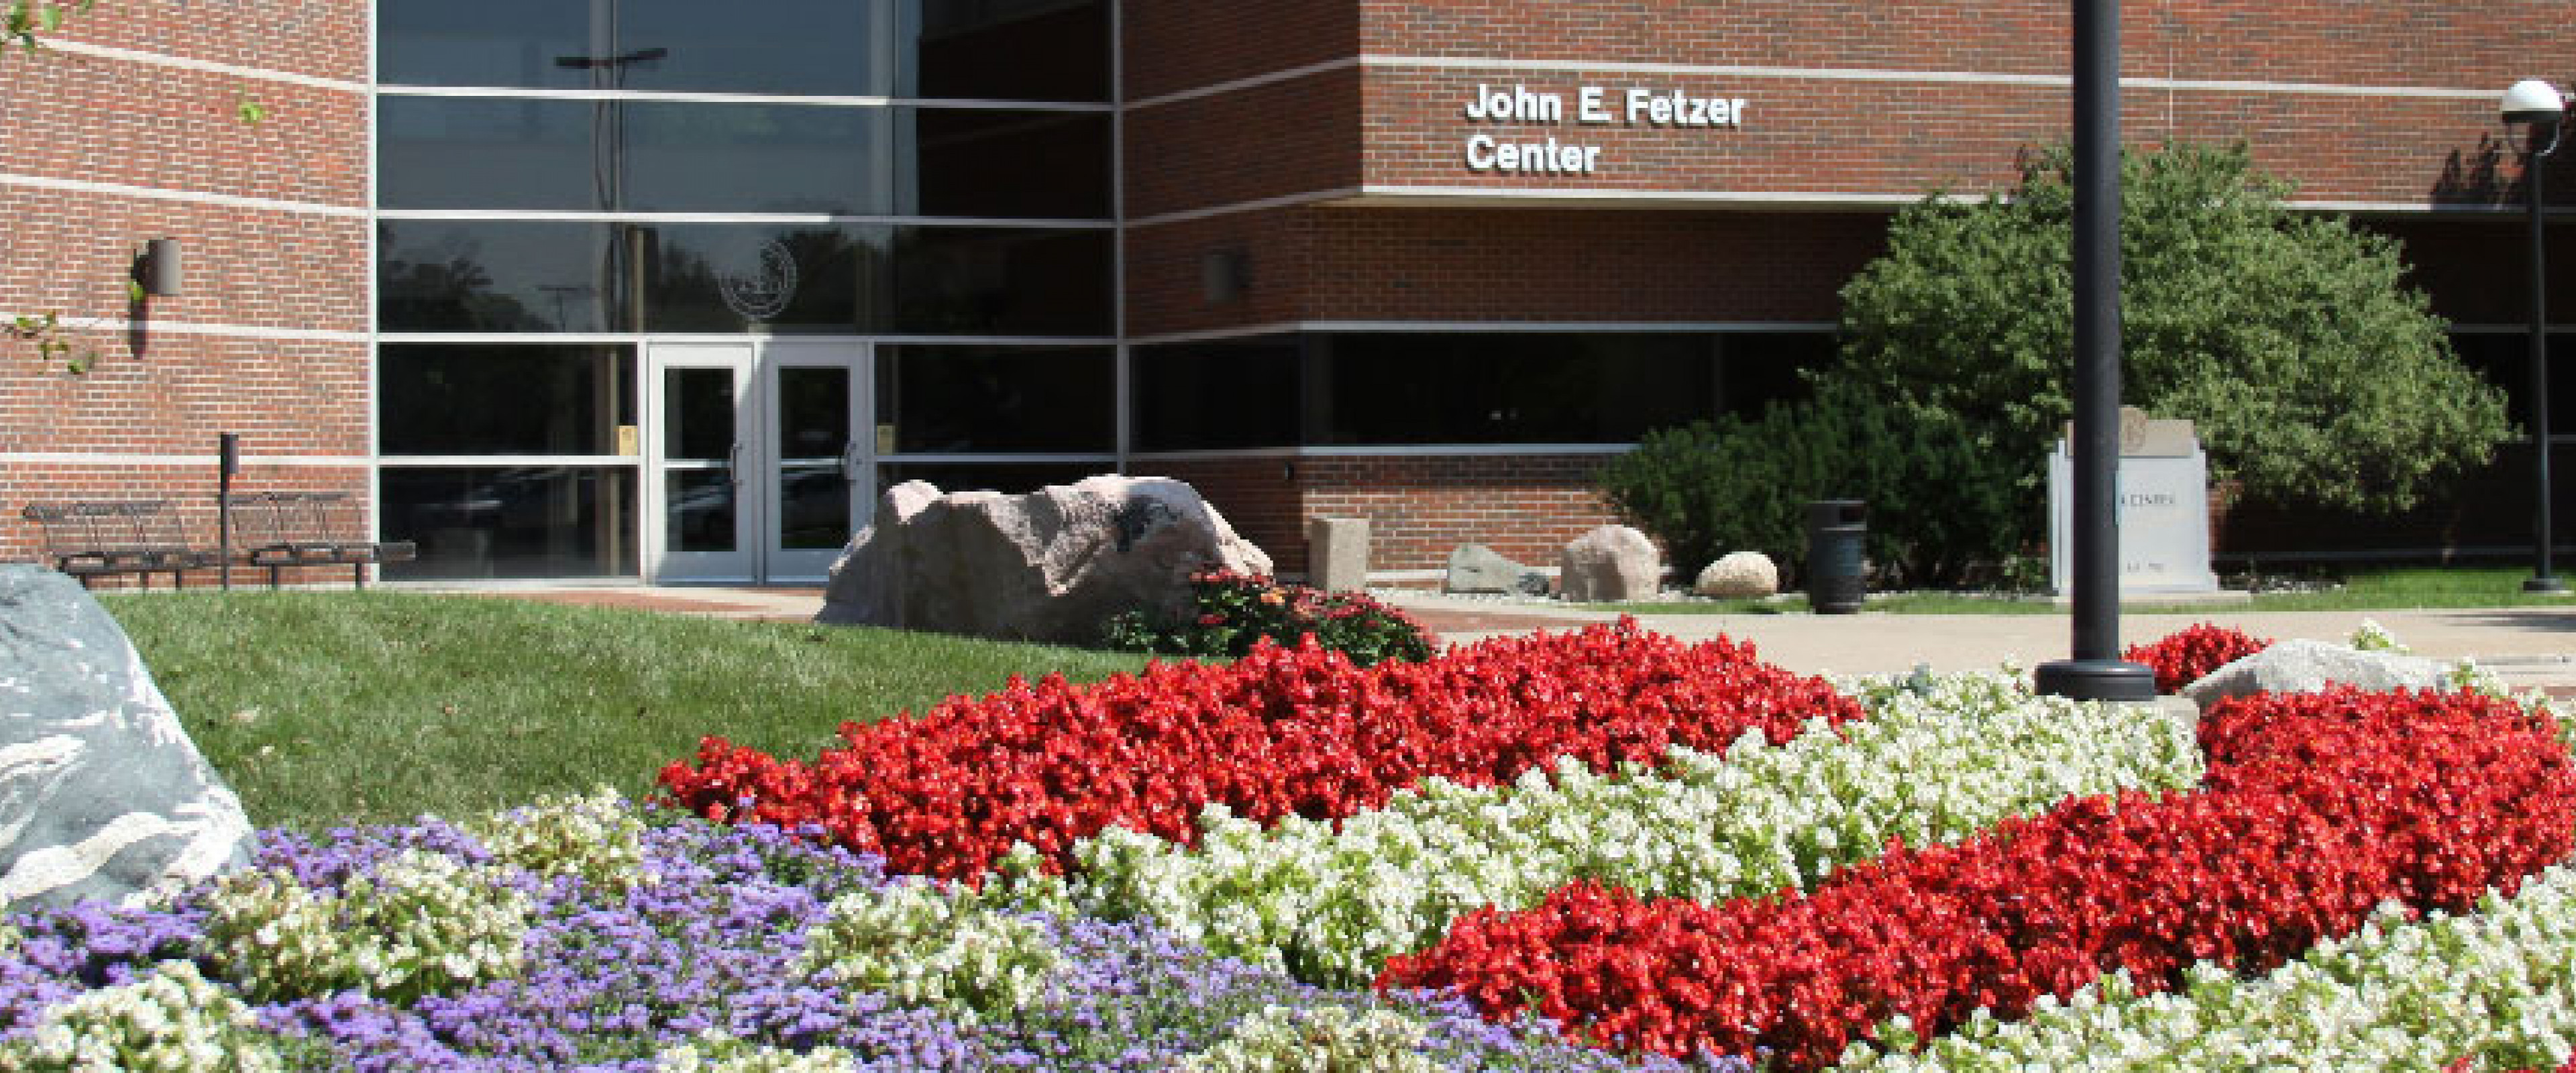 Fetzer building with purple, red and white flowers in front.